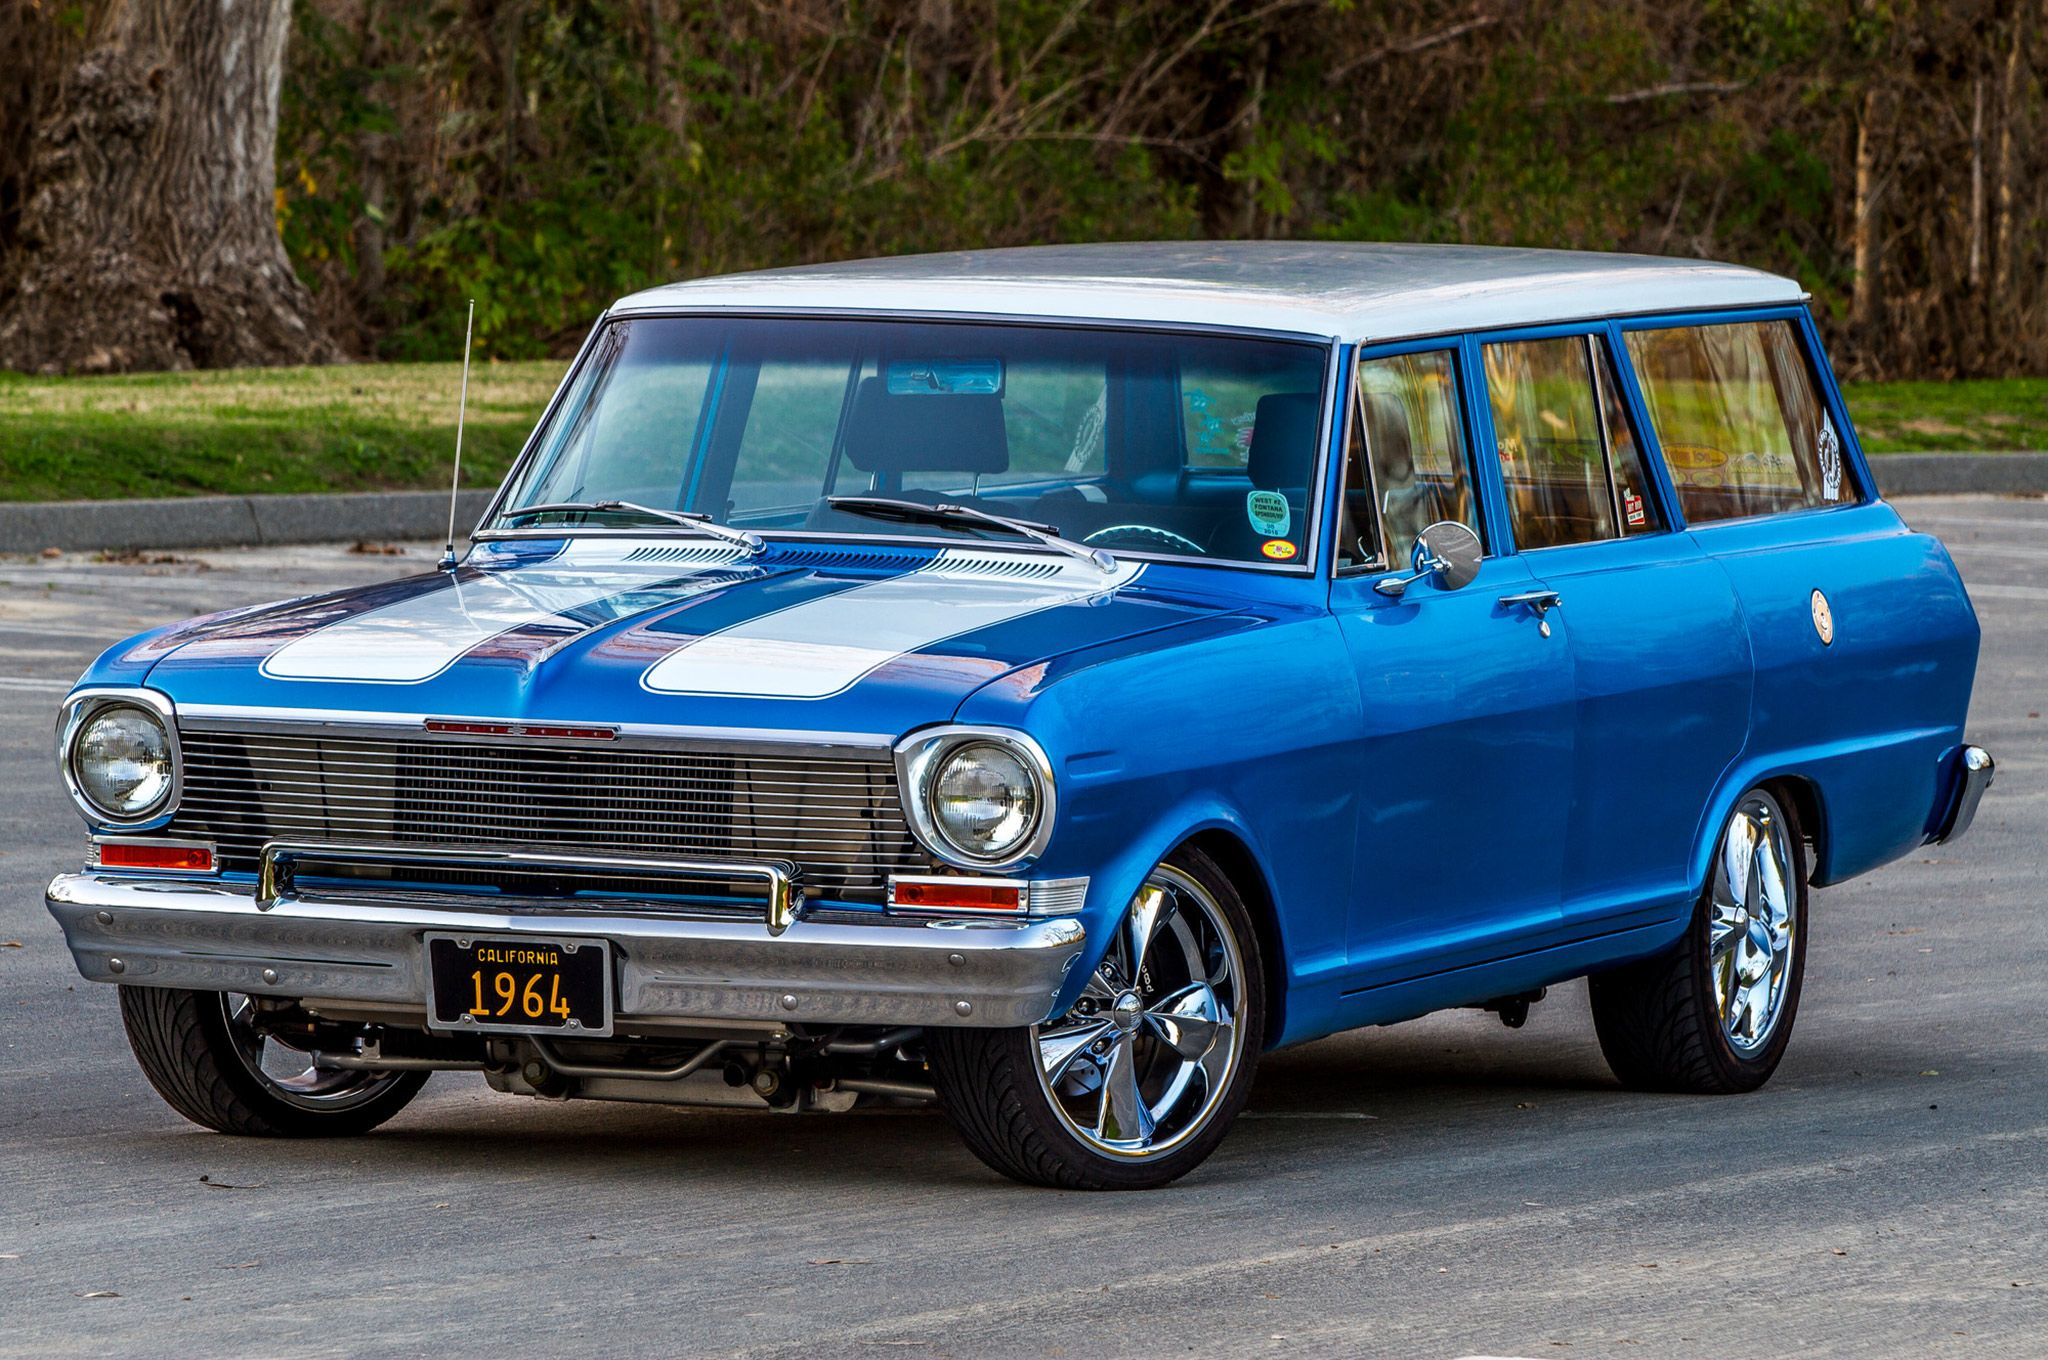 Wagons Can Be Great Resto Mod Material As Demonstrated By This 1964 Chevy Nova moreover Watch moreover Watch furthermore 1959 Chevy Impala Pond Find in addition 1974 Chevy Nova 1974 Chevy Nova Ss Specs Pictures. on 2016 chevrolet impala